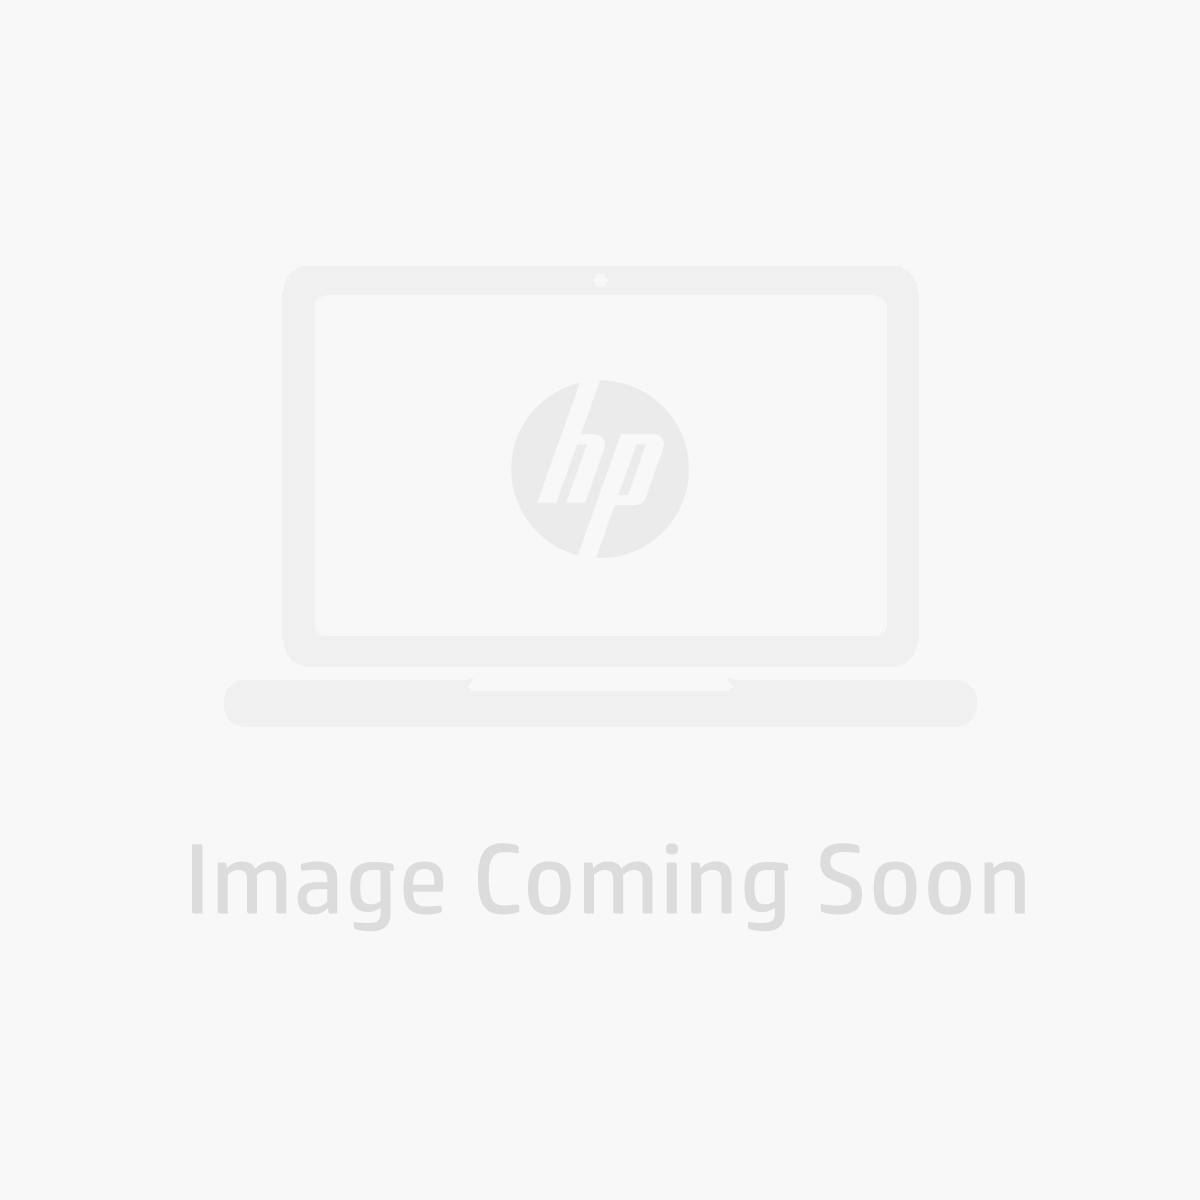 """HP Pavilion Intel® Core™ i5 Processor 9th Gen 17-cd0015ni 17.3"""" FHD Gaming Laptop with NVIDIA® GeForce® GTX 1650 in Shadow Black"""